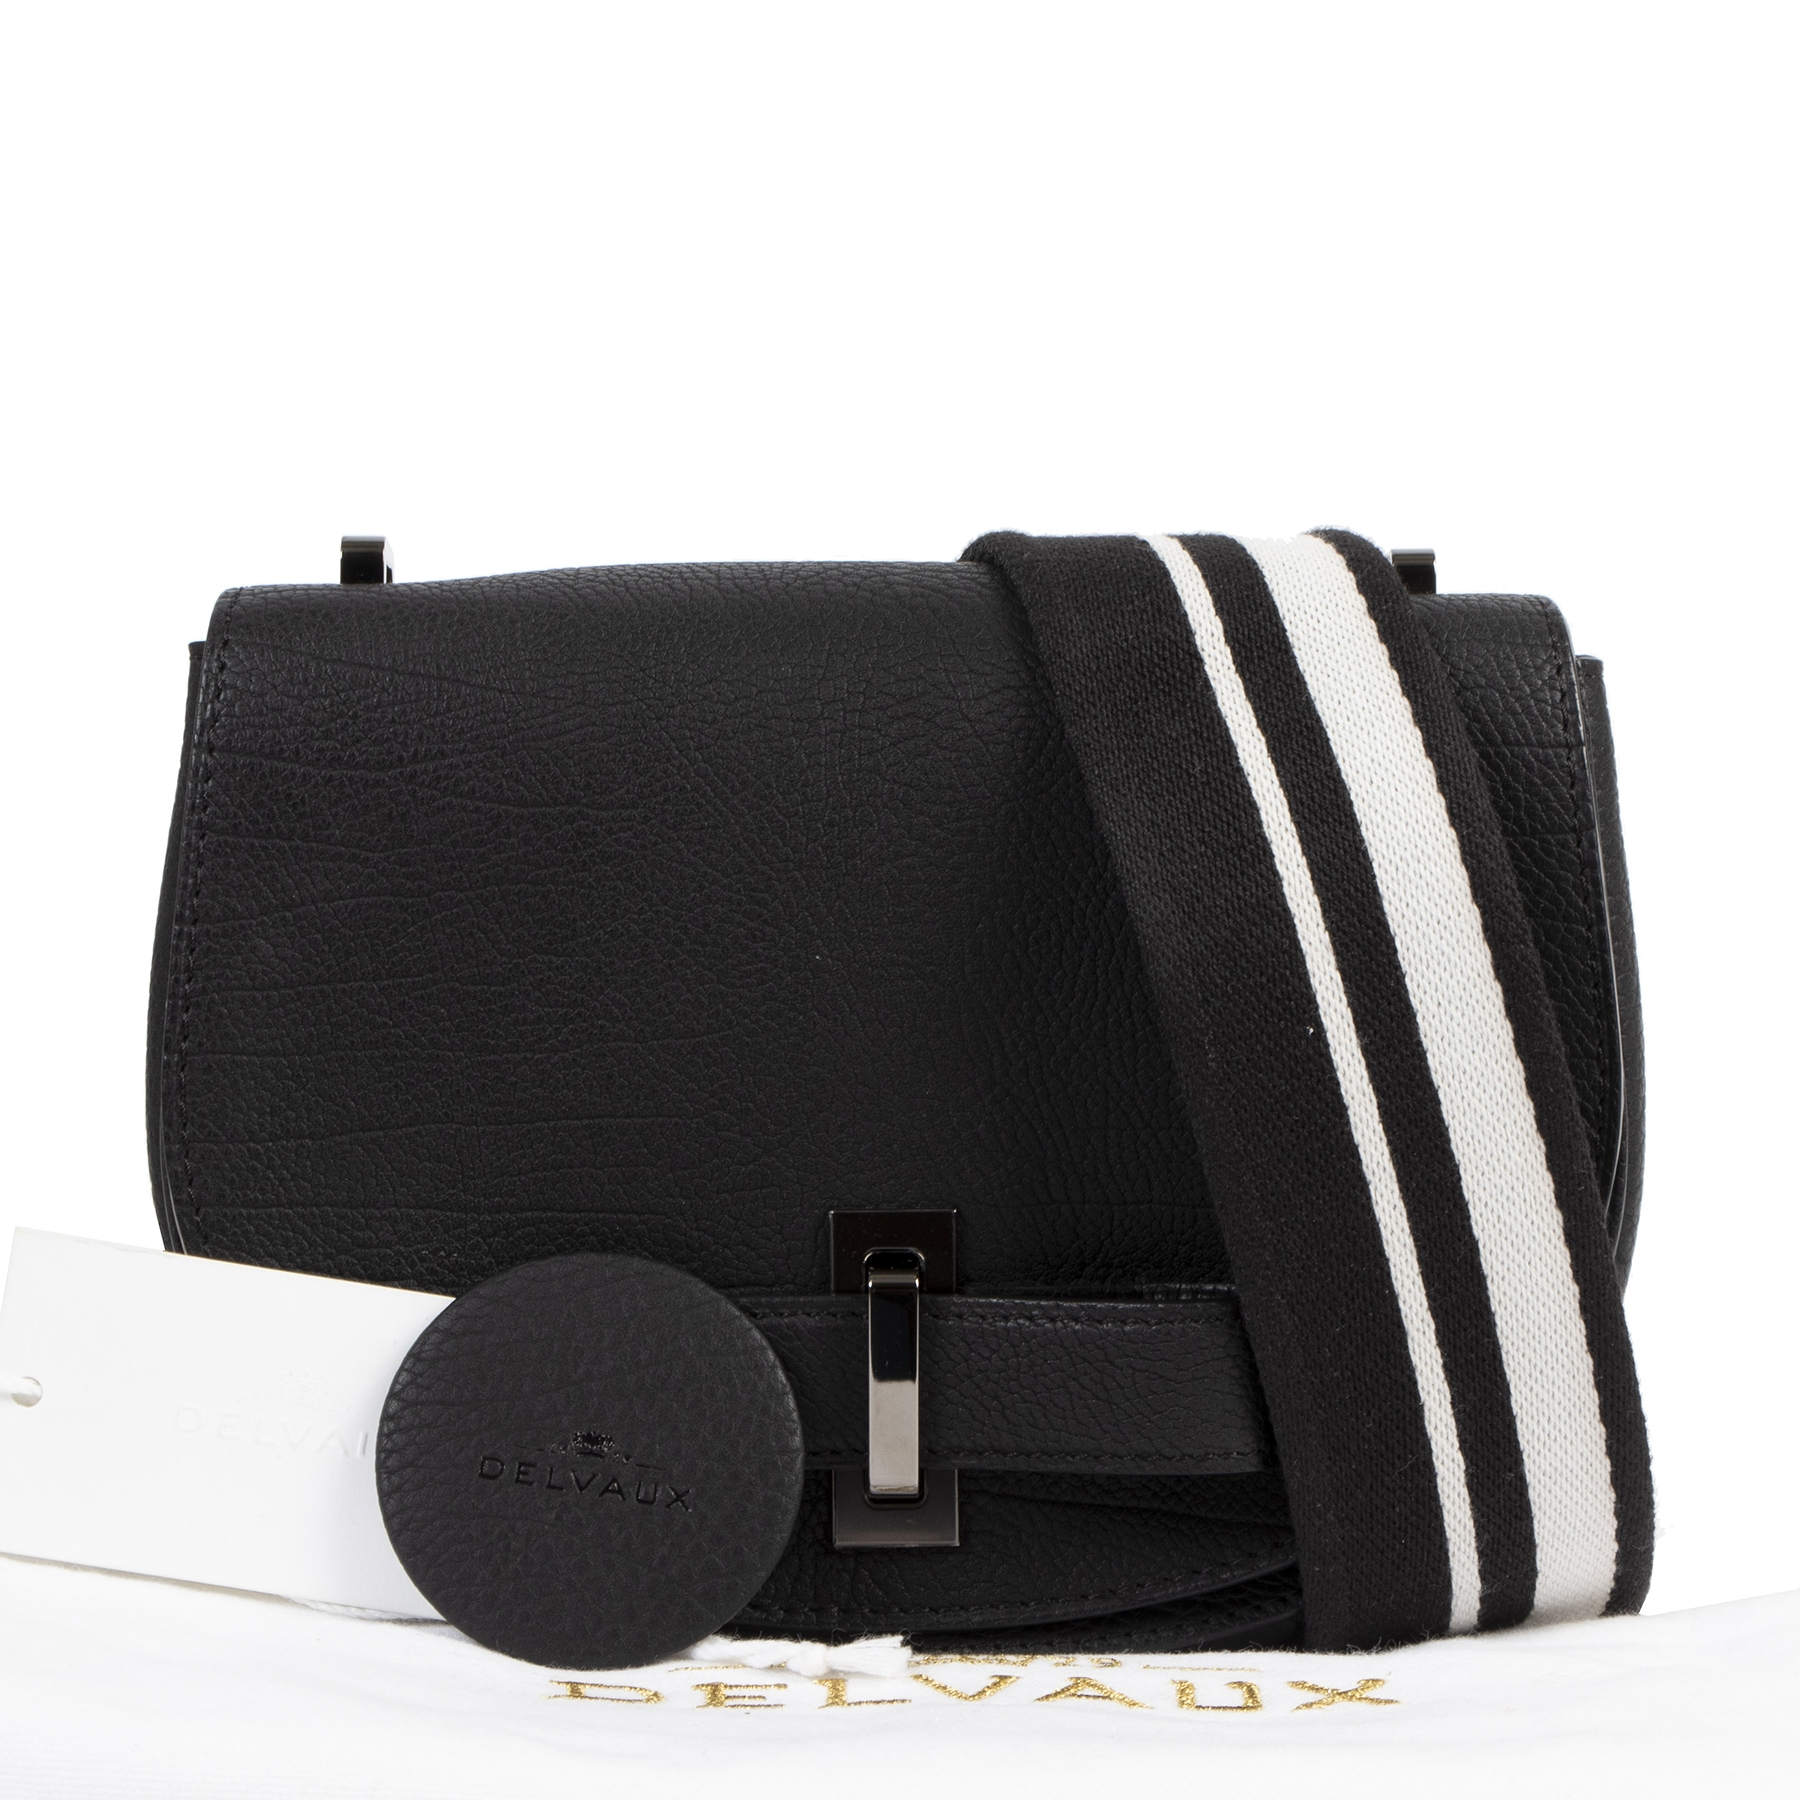 net als nieuw Delvaux Black And White Le Mutin Mini Crispy Calf